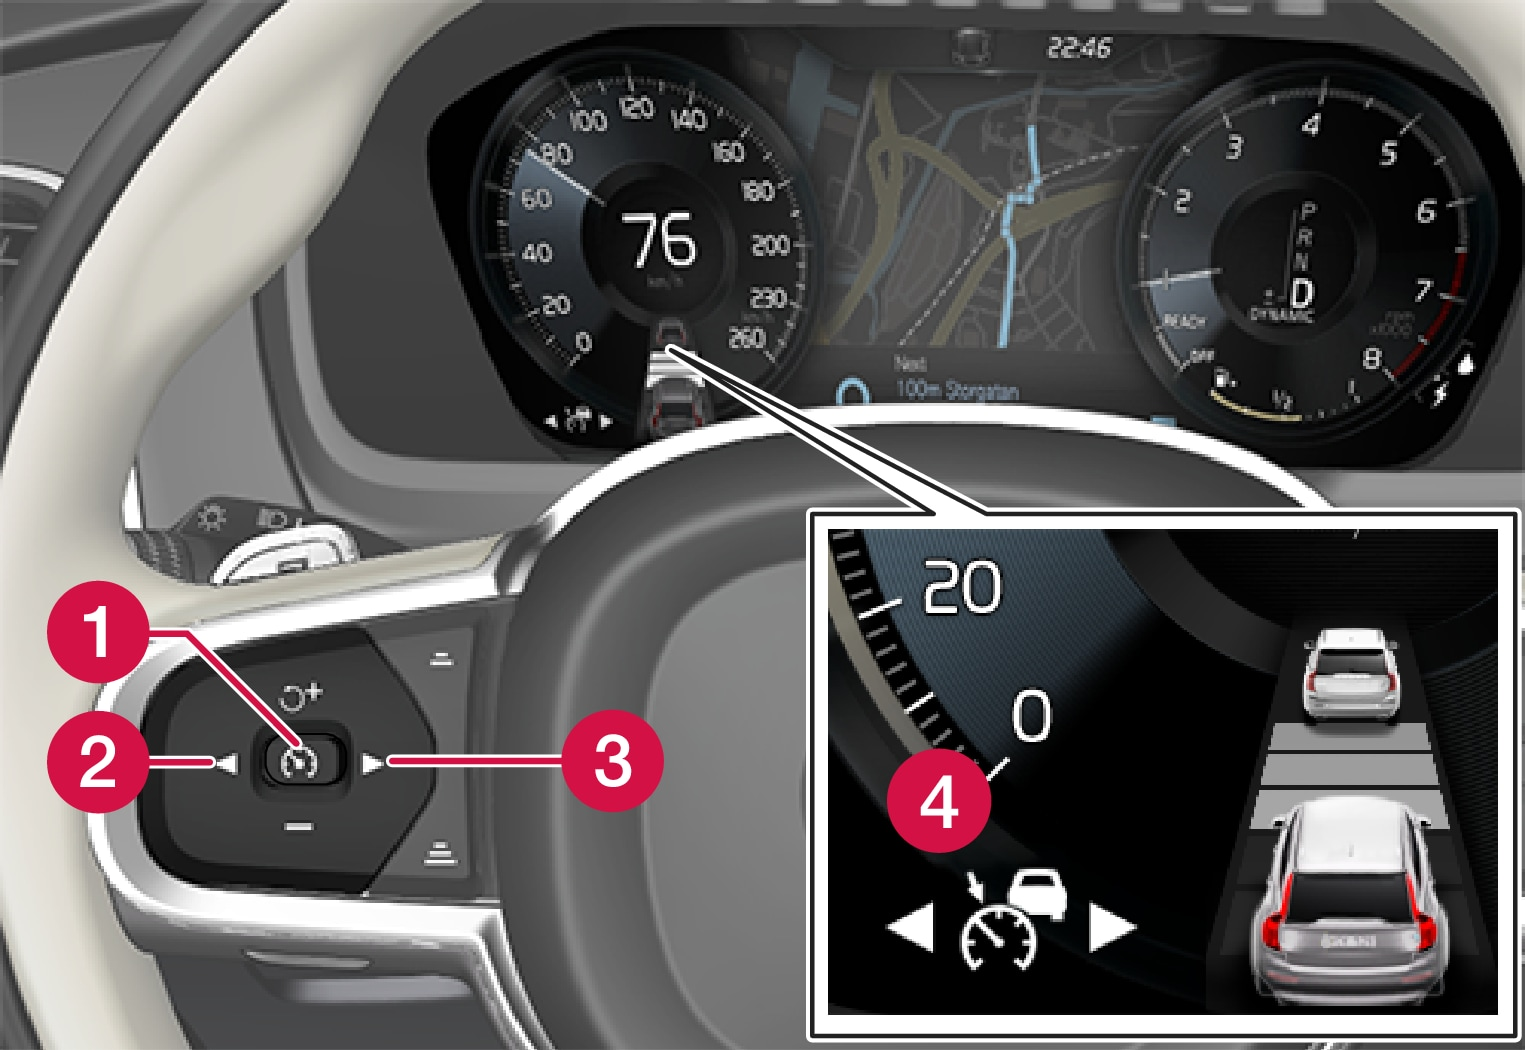 P5-1507-Adaptive Cruise Control, setting cruise control in standby mode